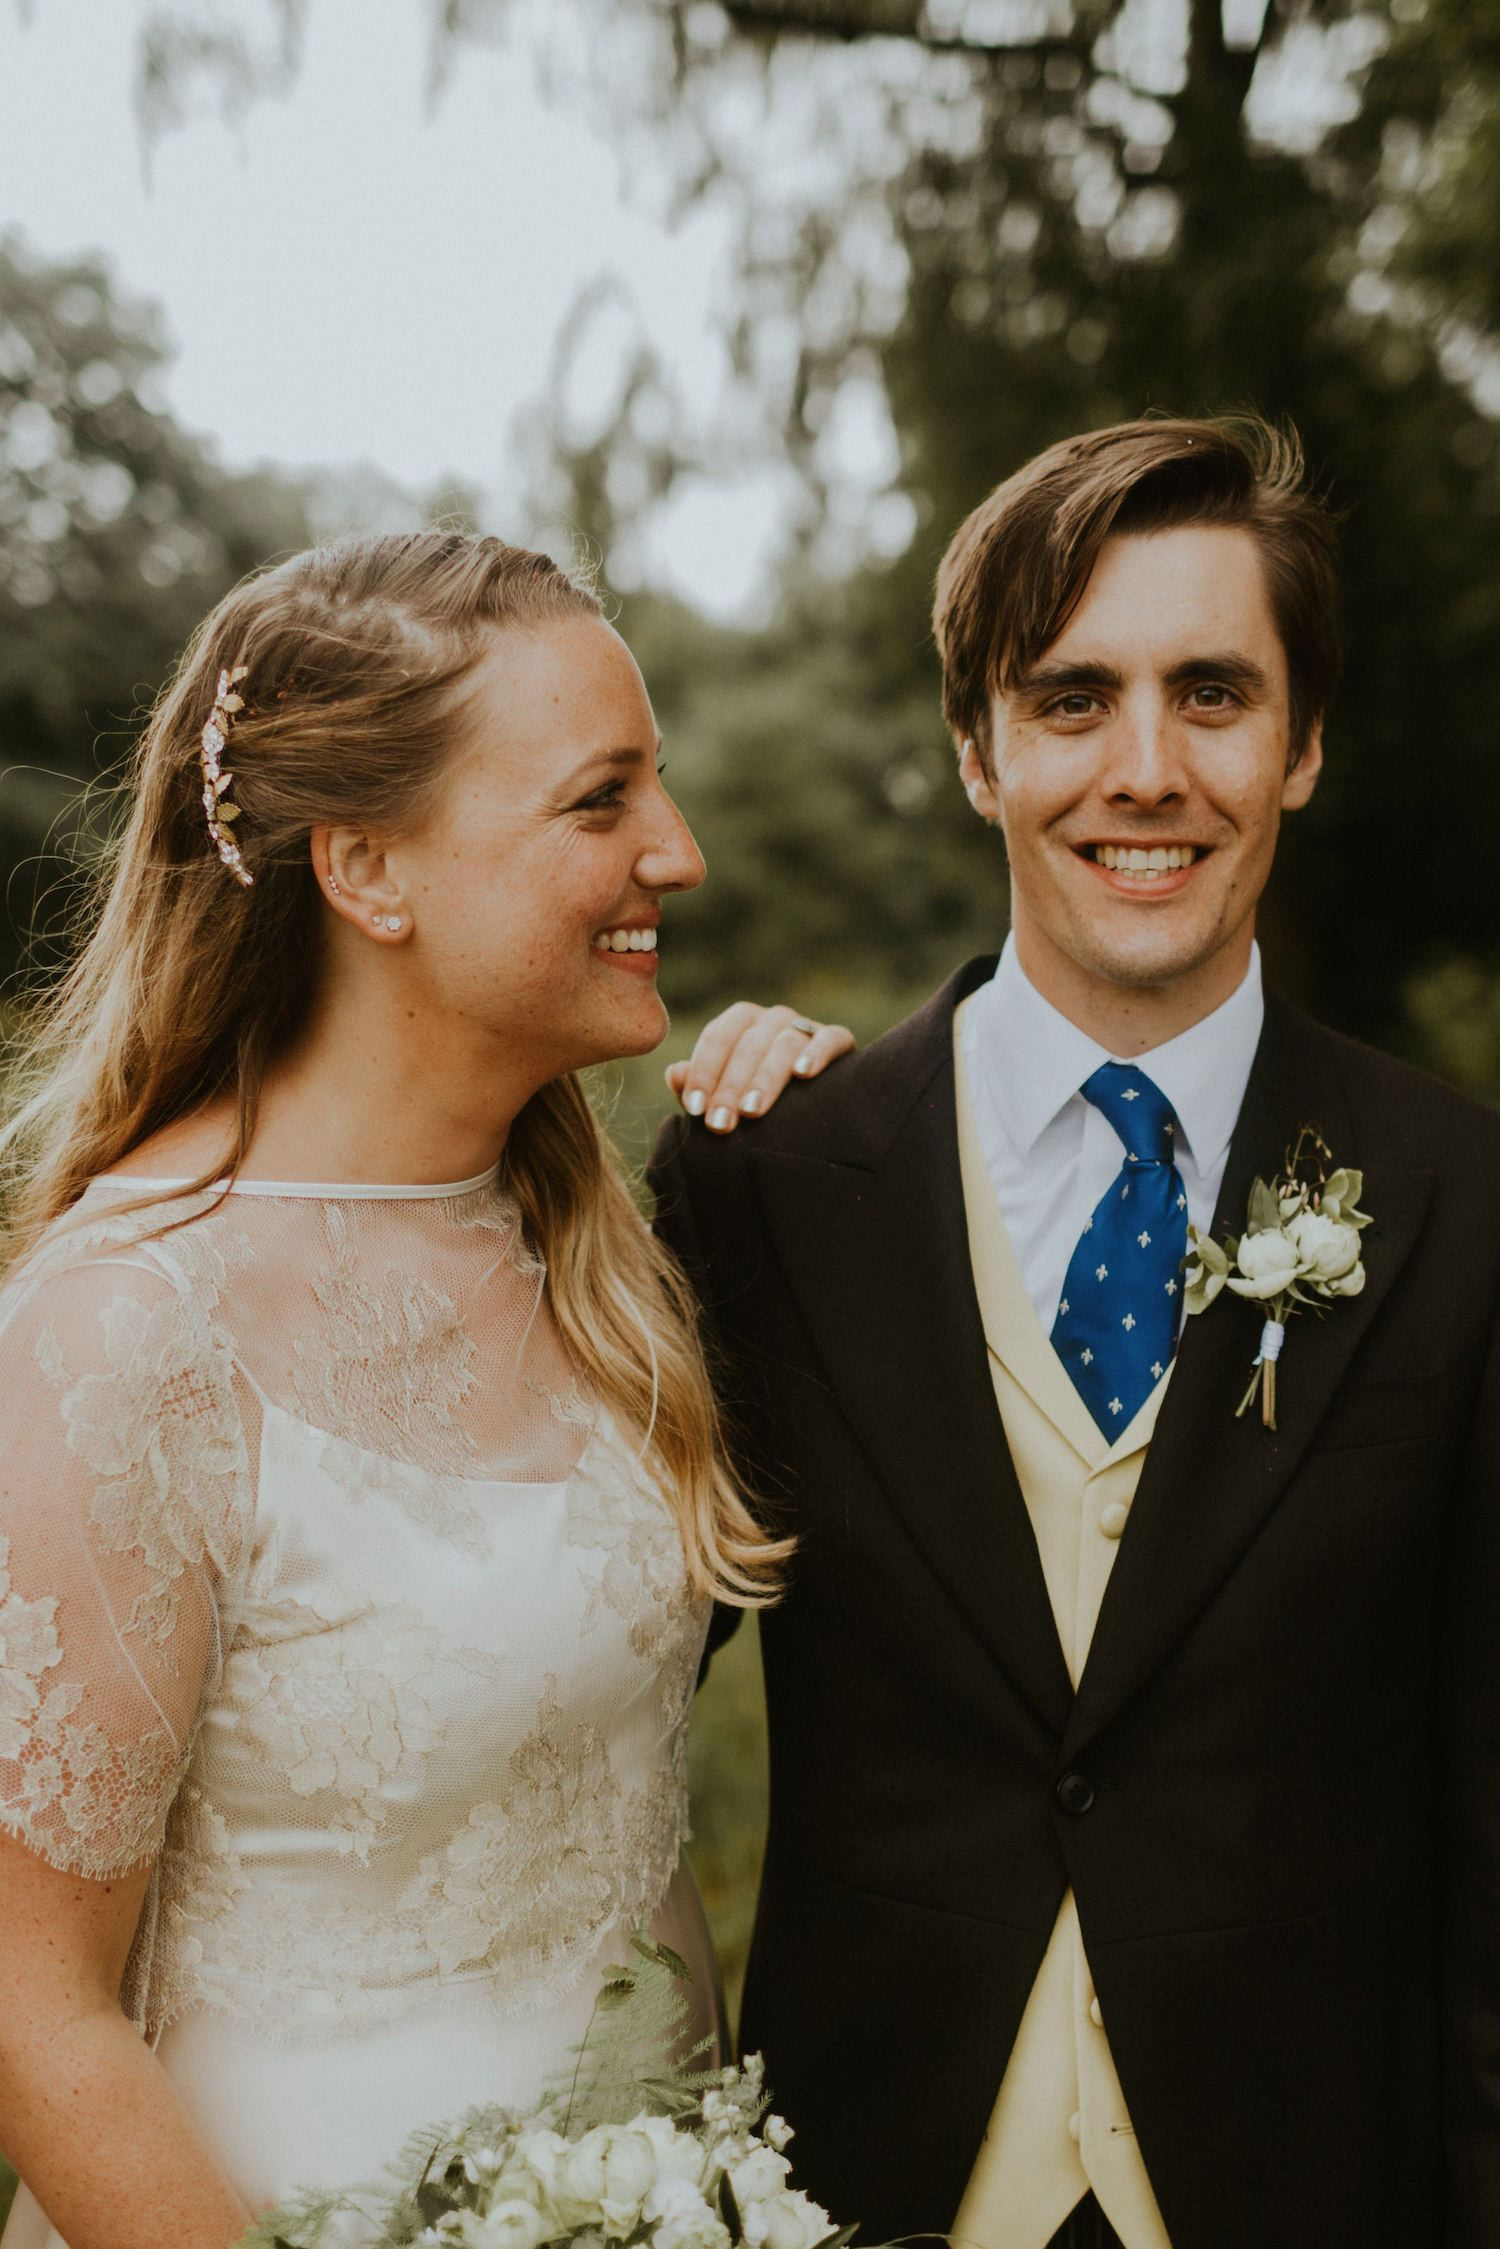 Blush Halfpenny London separates and Tilly Thomas Lux Amy Leaf Combs for a Church Wedding